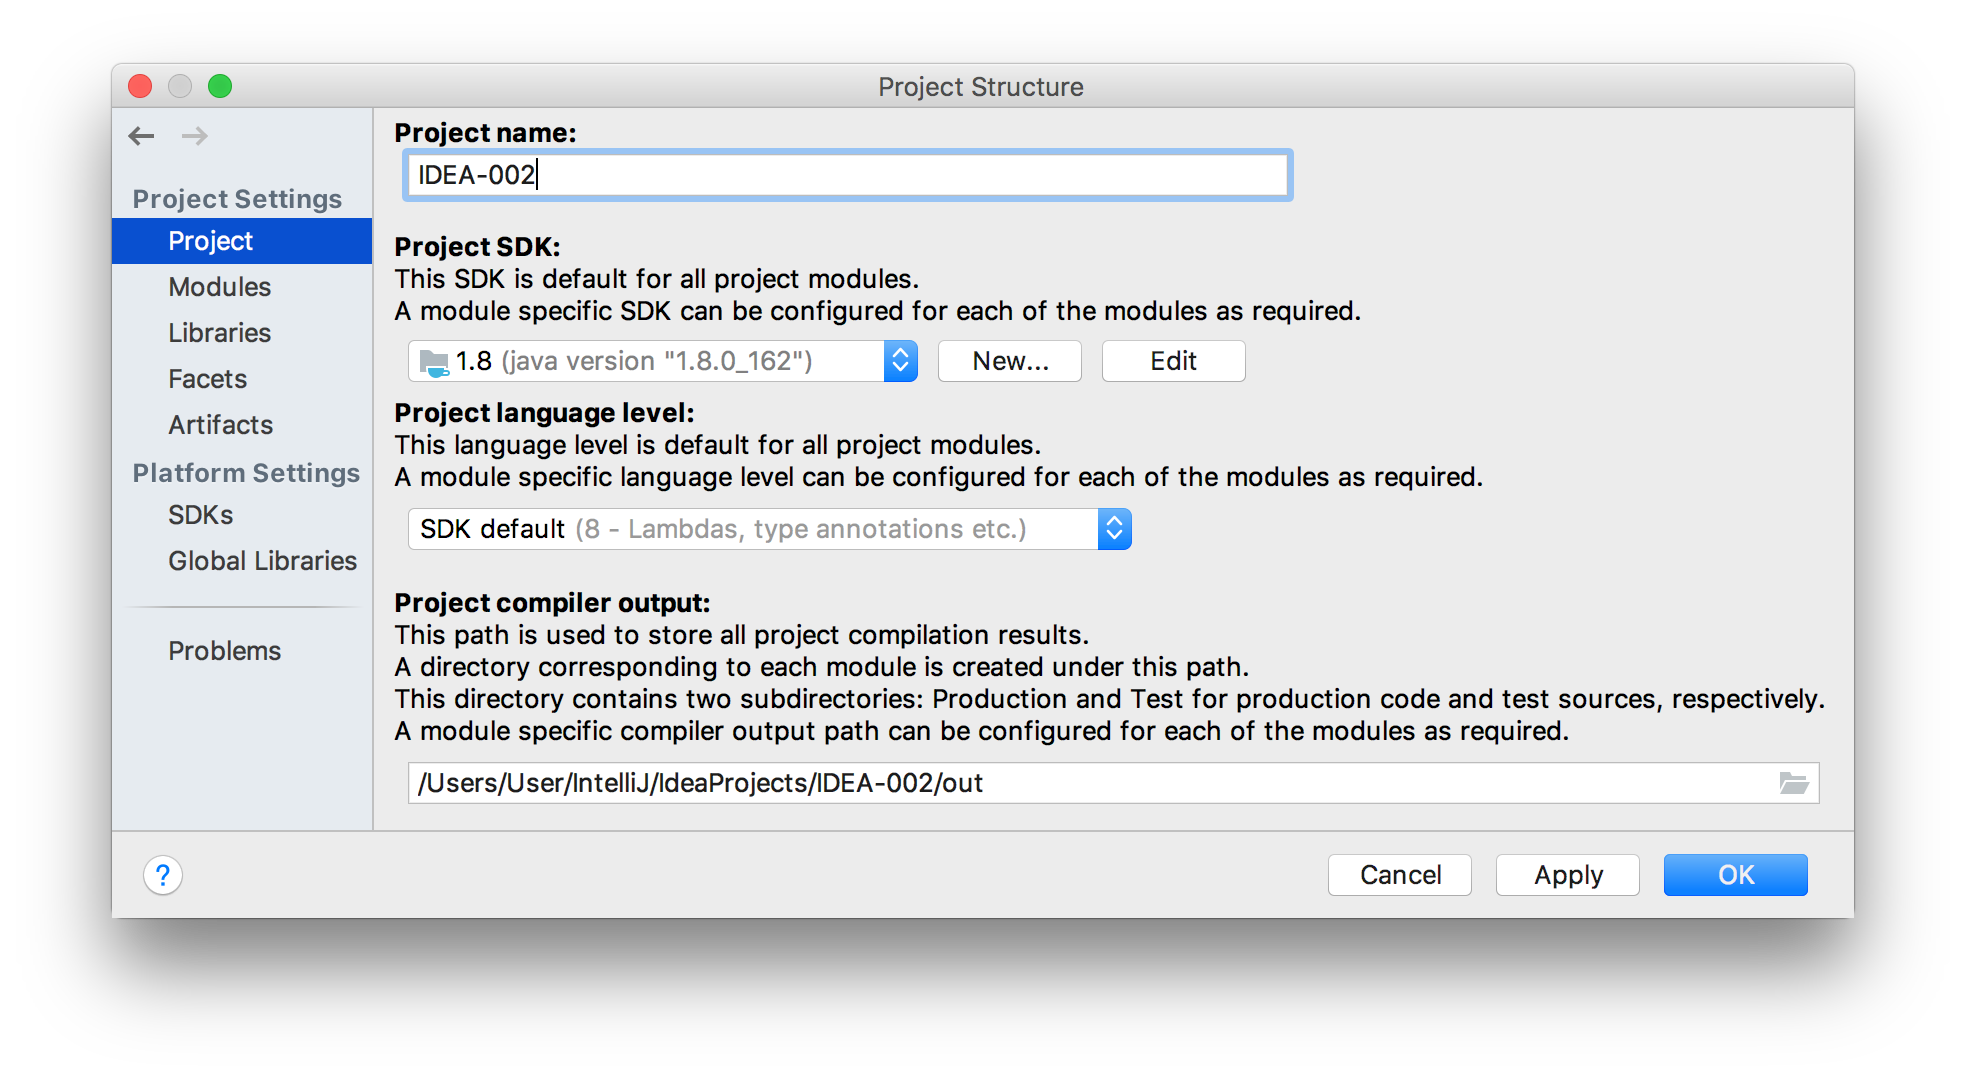 The Project tab of the Project Structure dialog